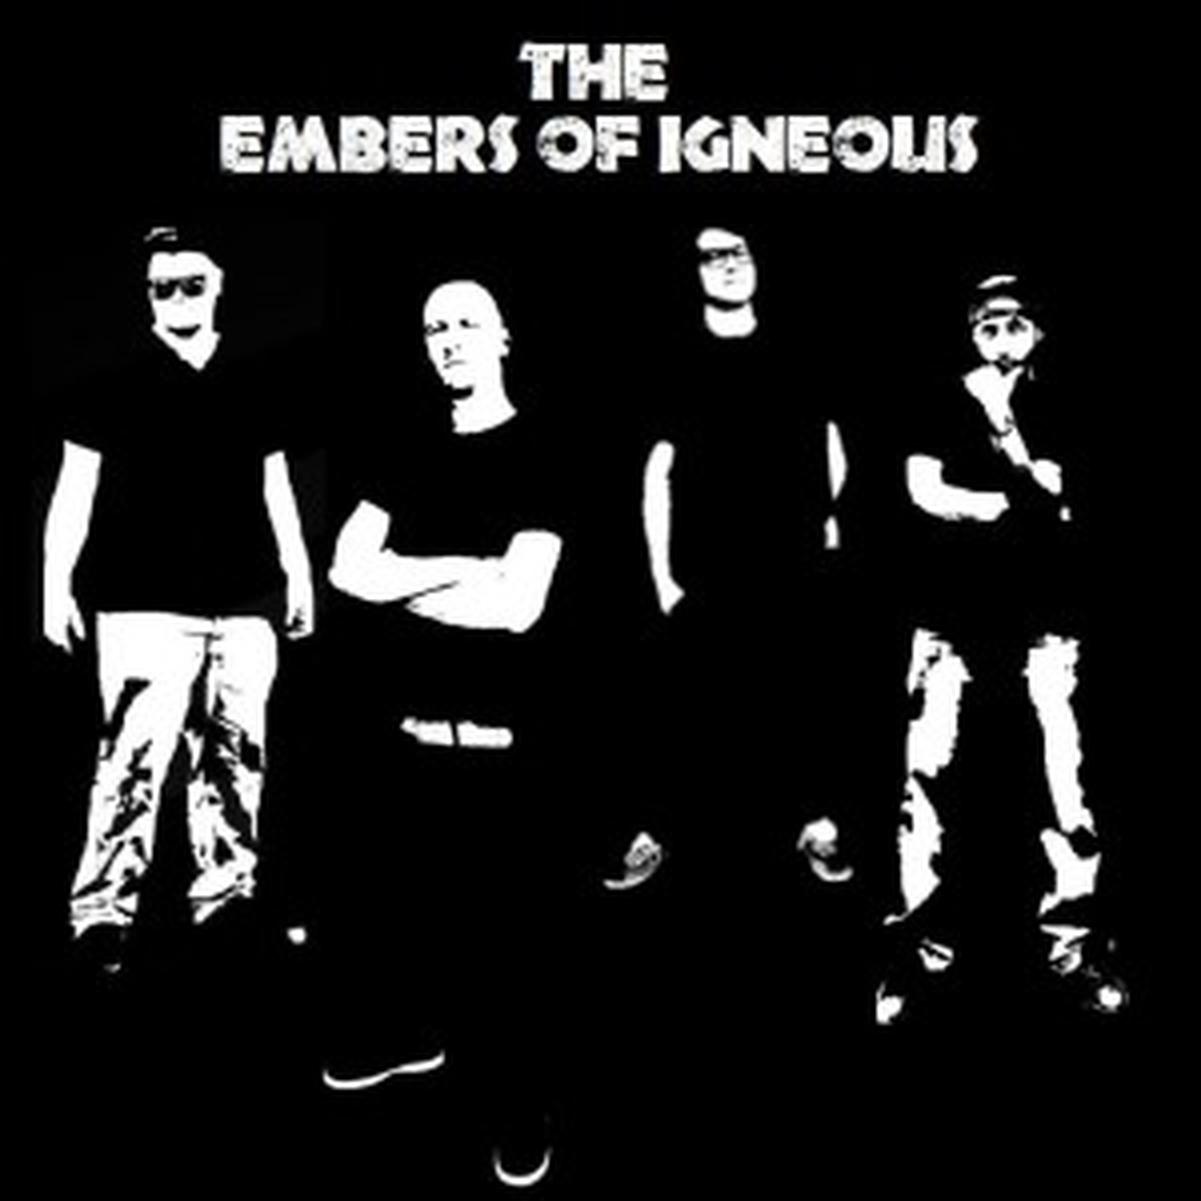 Embers_of_Igneous wiki, Embers_of_Igneous review, Embers_of_Igneous history, Embers_of_Igneous news